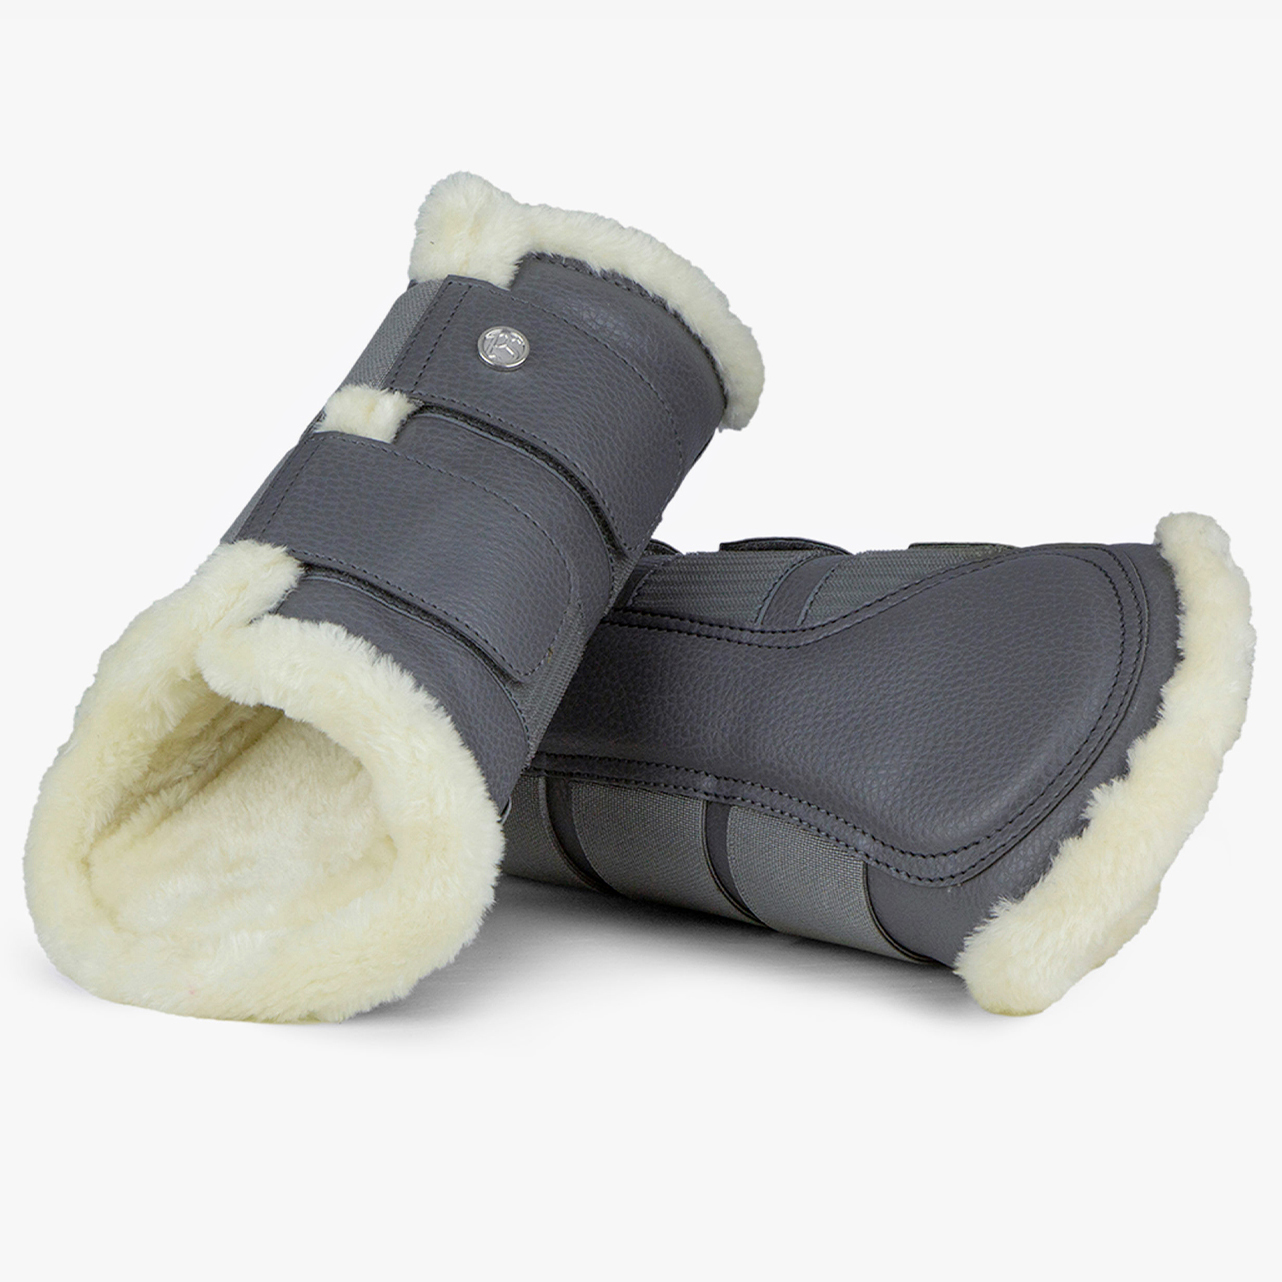 PS of Sweden 4er Set Gamaschen, Brushing Boots in anthracite